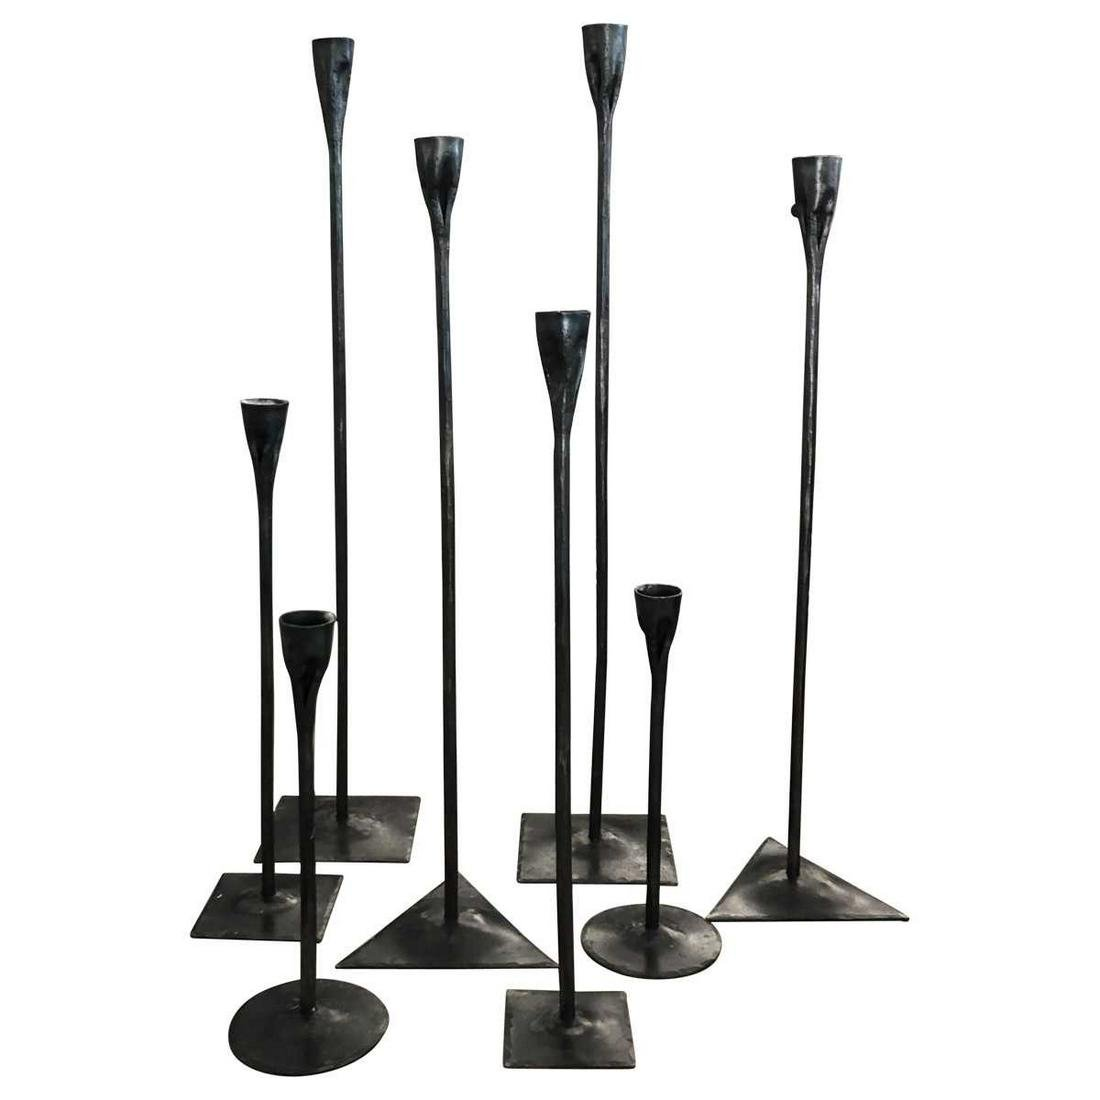 Contemporary Higly Decorative Standing Candle Holders